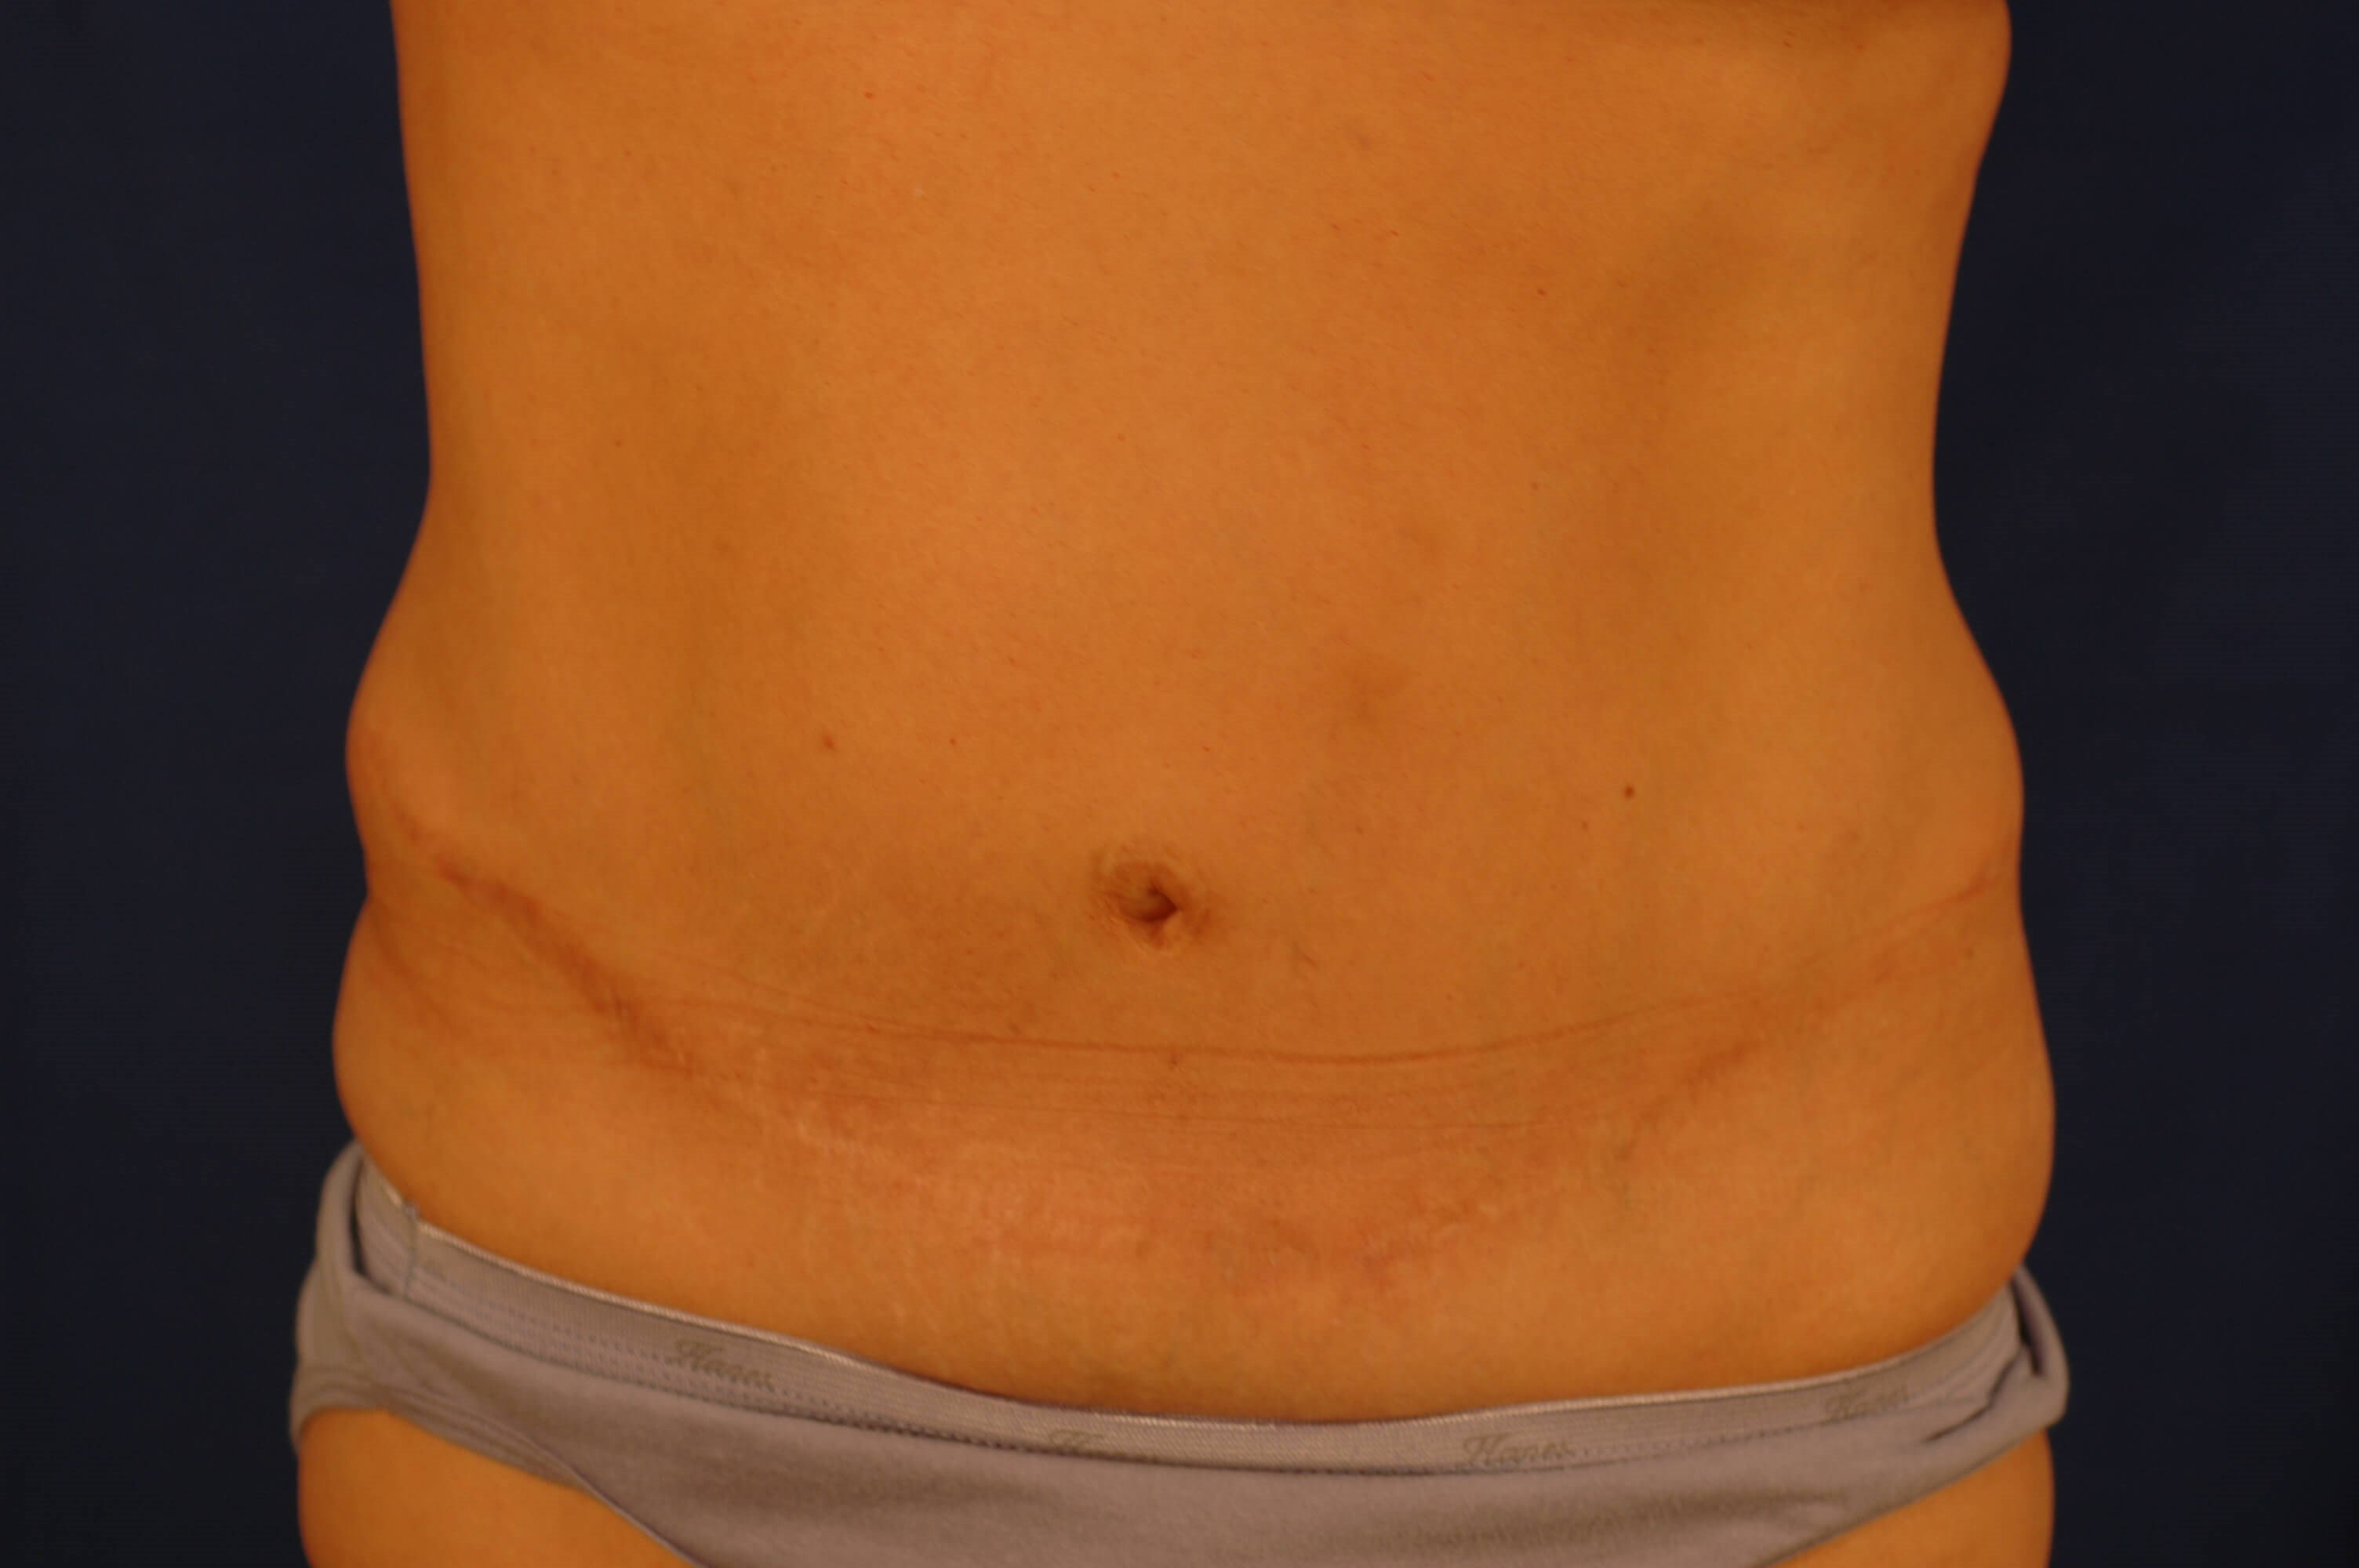 Newport Beach Body Contouring After Front View